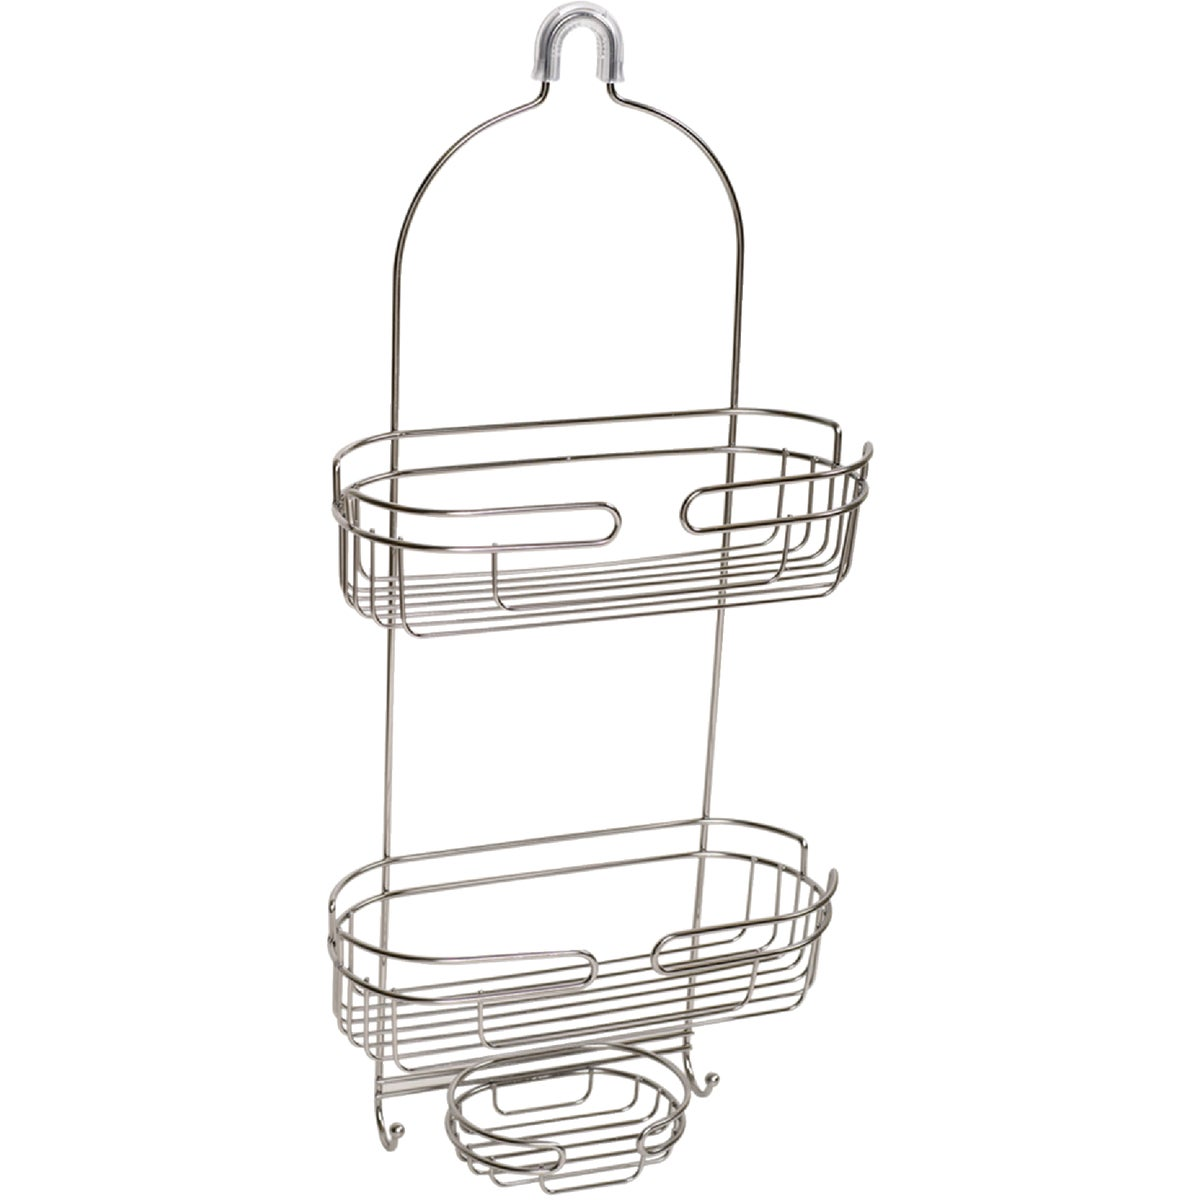 SS OVER-THE-SHOWER CADDY - 7528ST02 by Zenith Prod Corp